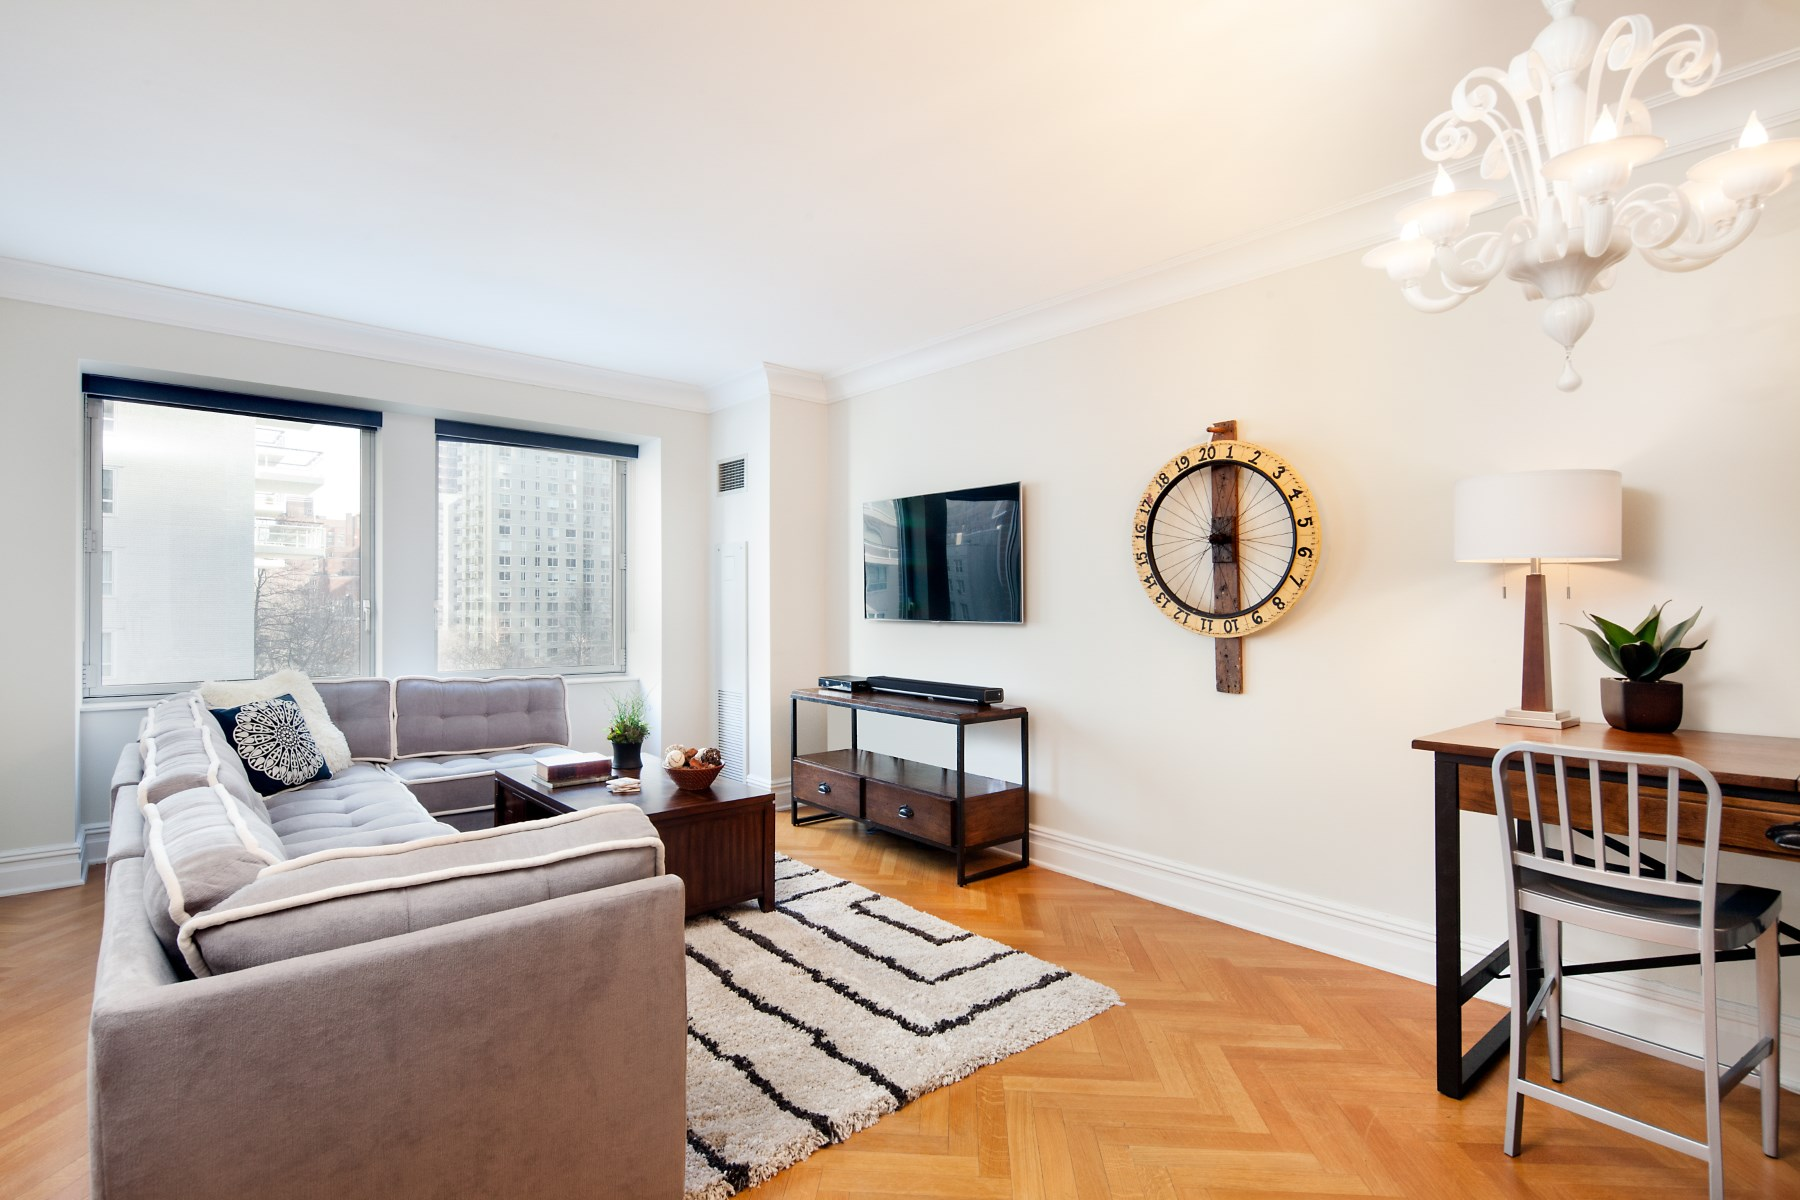 Condominium for Sale at 2 Bedroom at The Chatham 181 East 65th Street Apt 5d Upper East Side, New York, New York 10065 United States